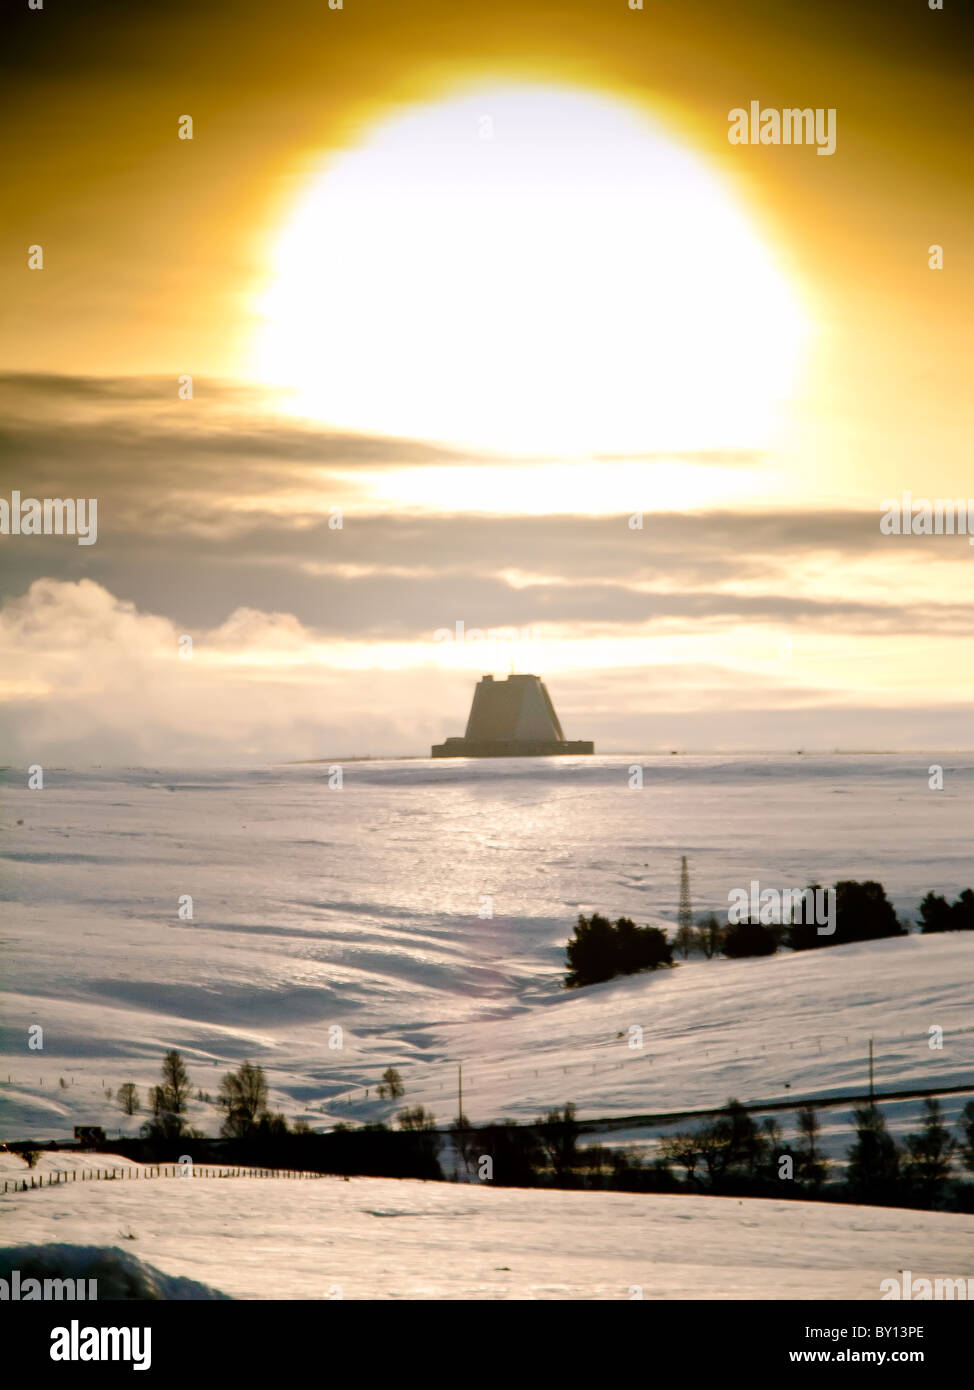 RAF Flylingdales early warning station in snow, North Yorkshire with setting sun looking bit like a nuclear explosion - Stock Image